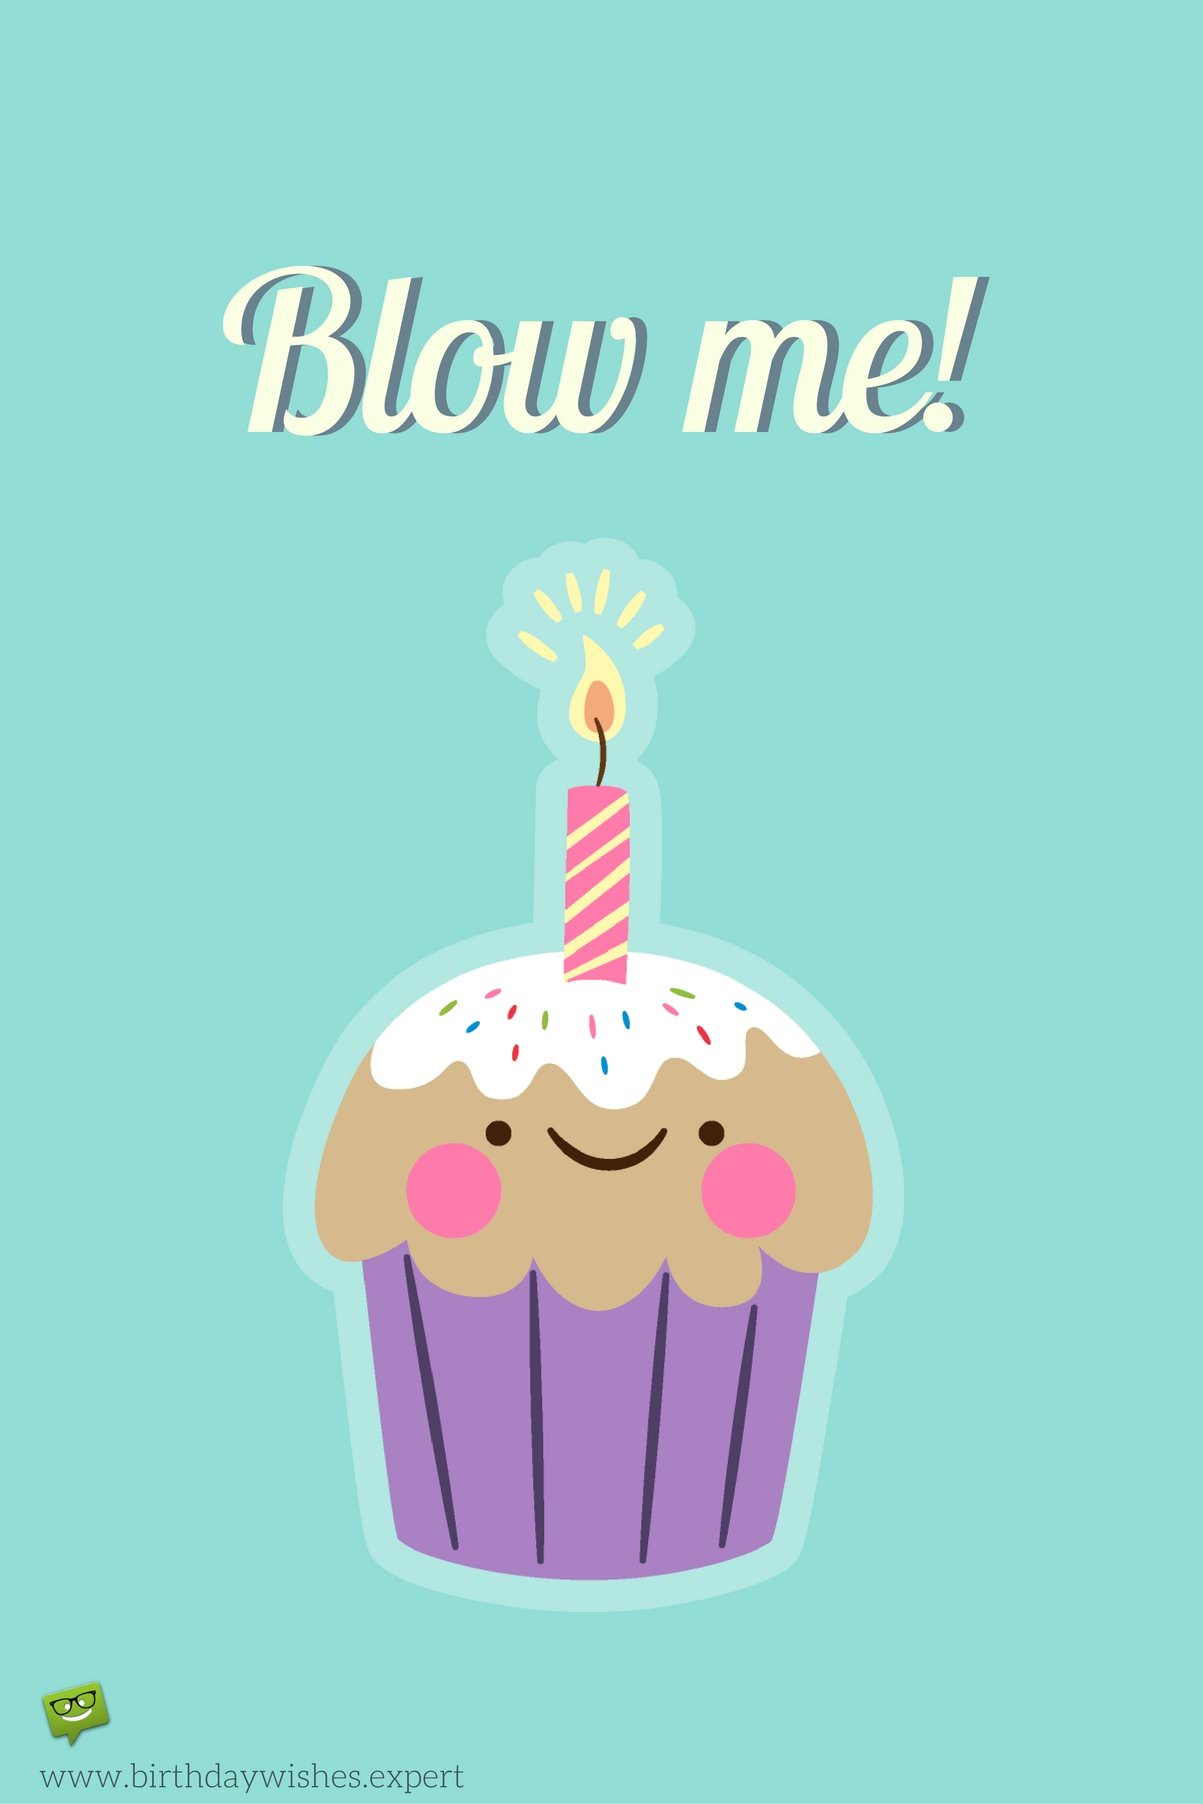 Funny Birthday Greetings  Funny Birthday Wishes for your Friends